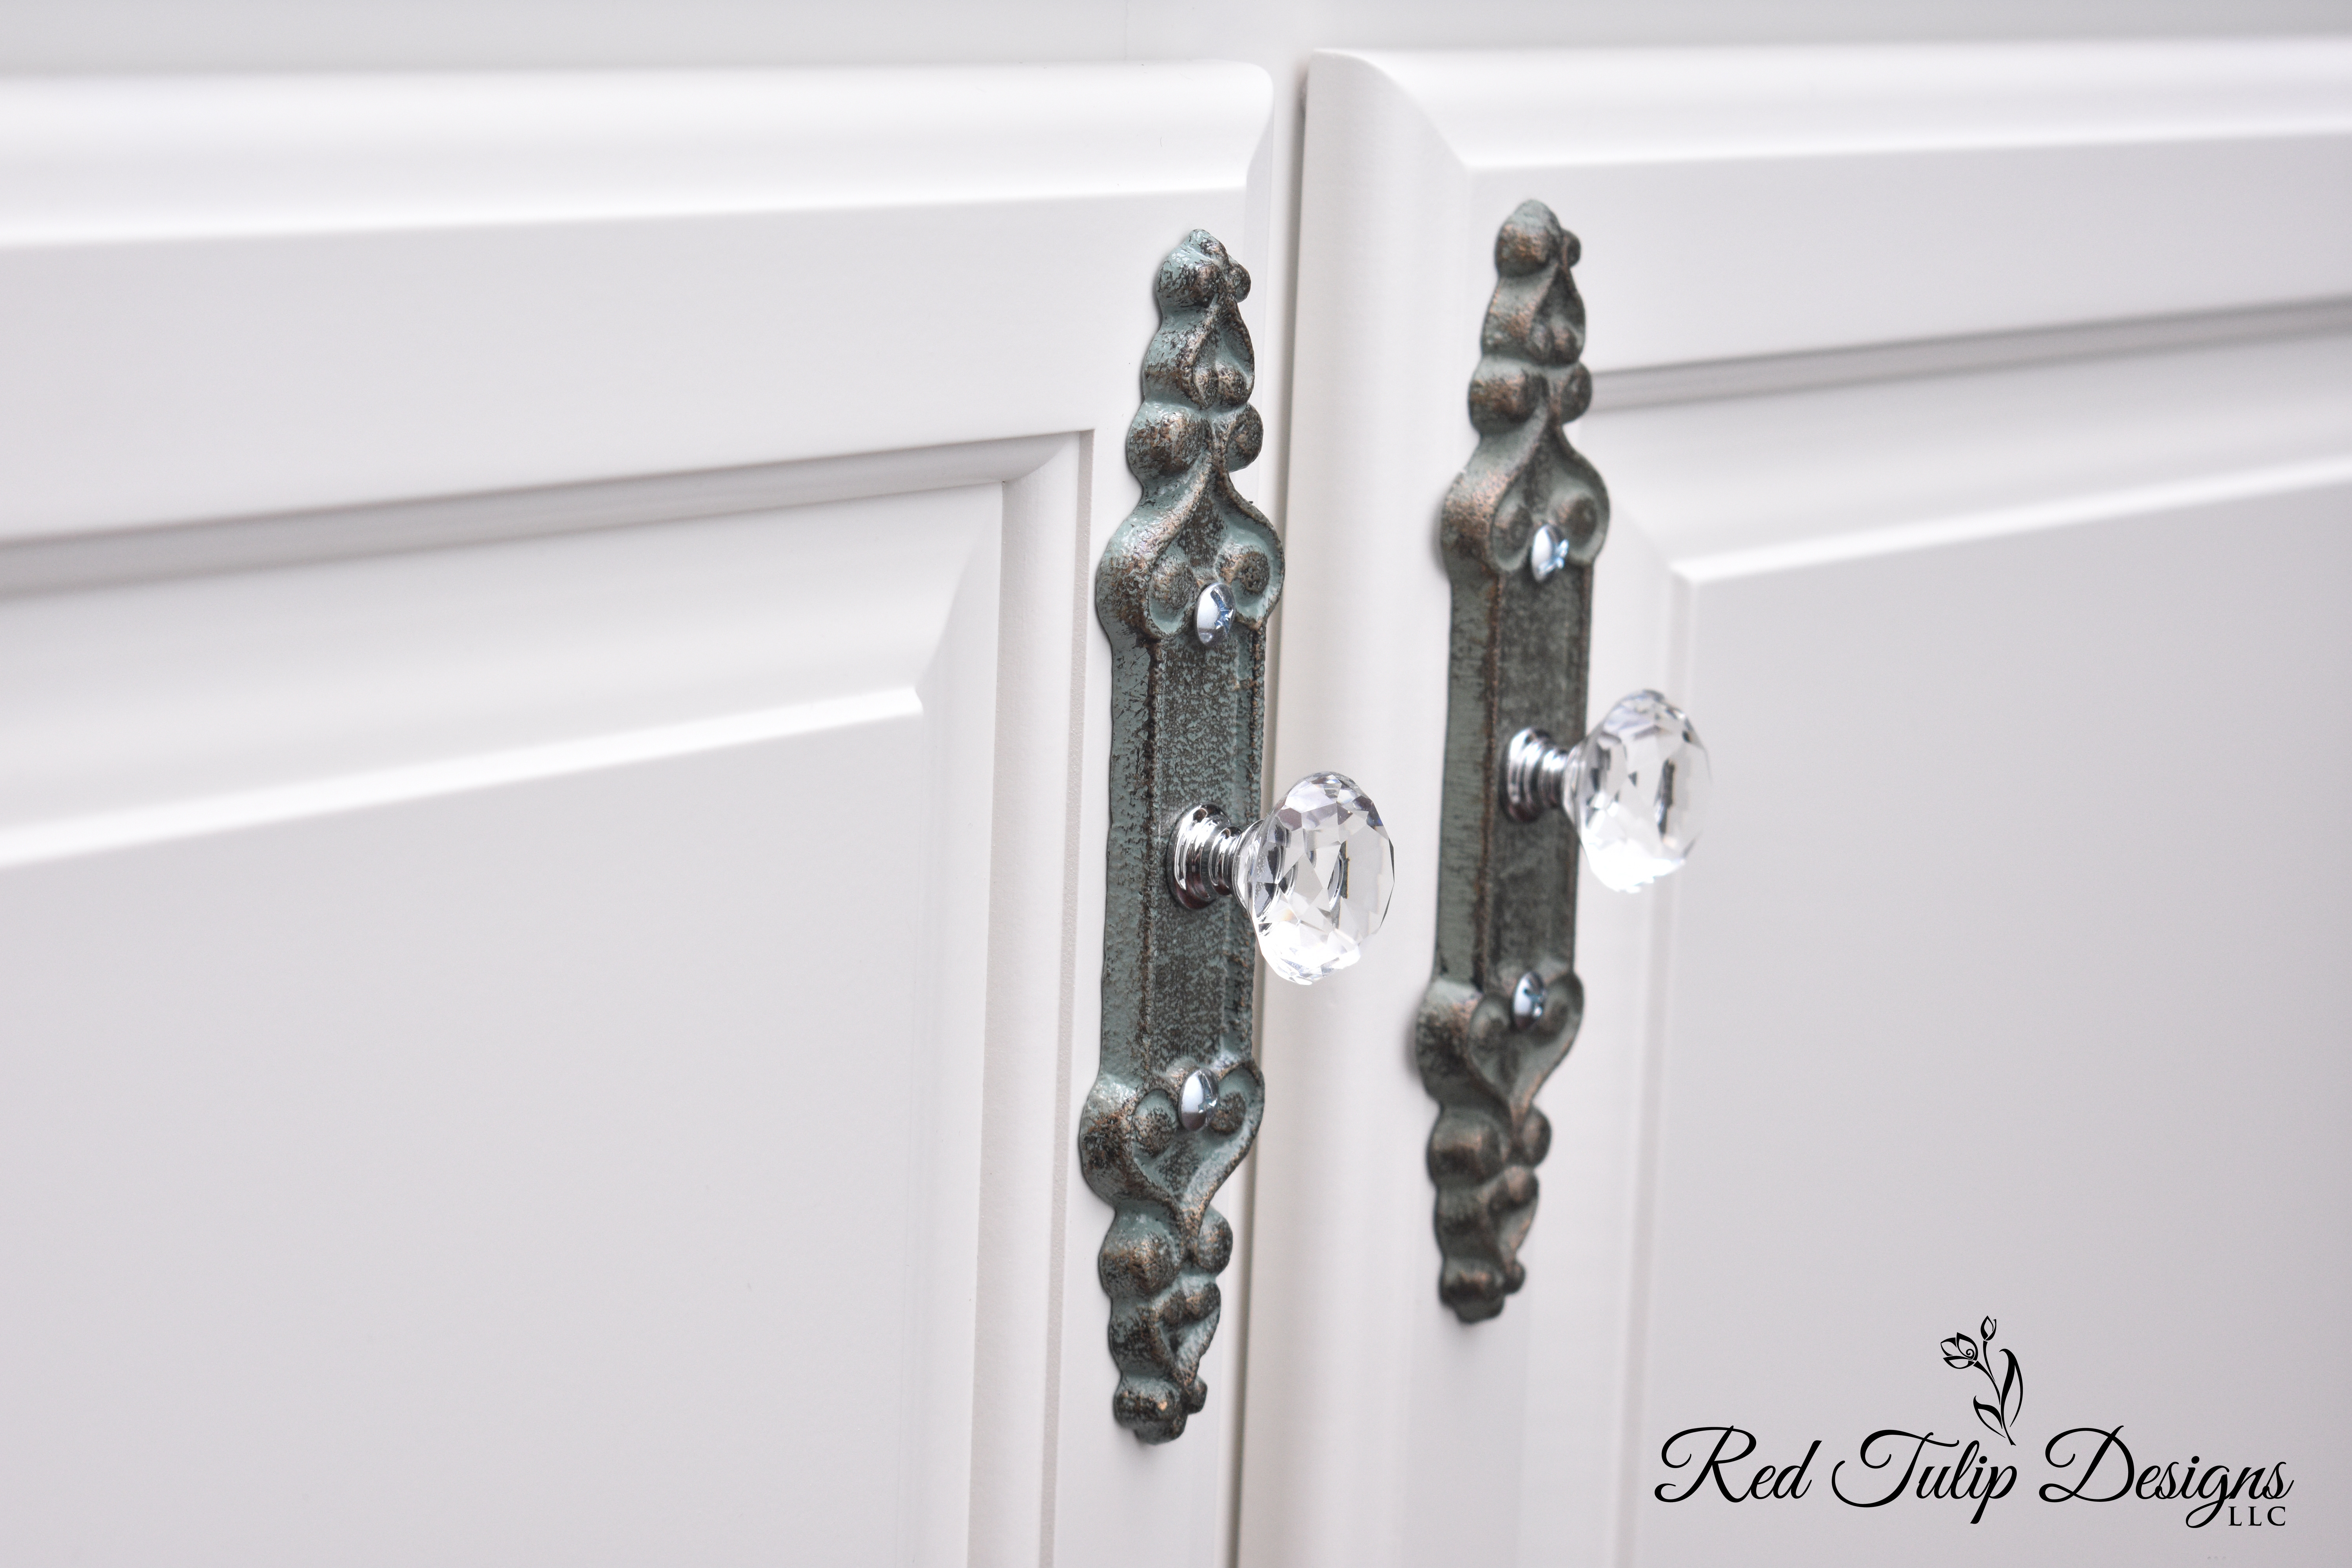 New Doors With a Little Bling